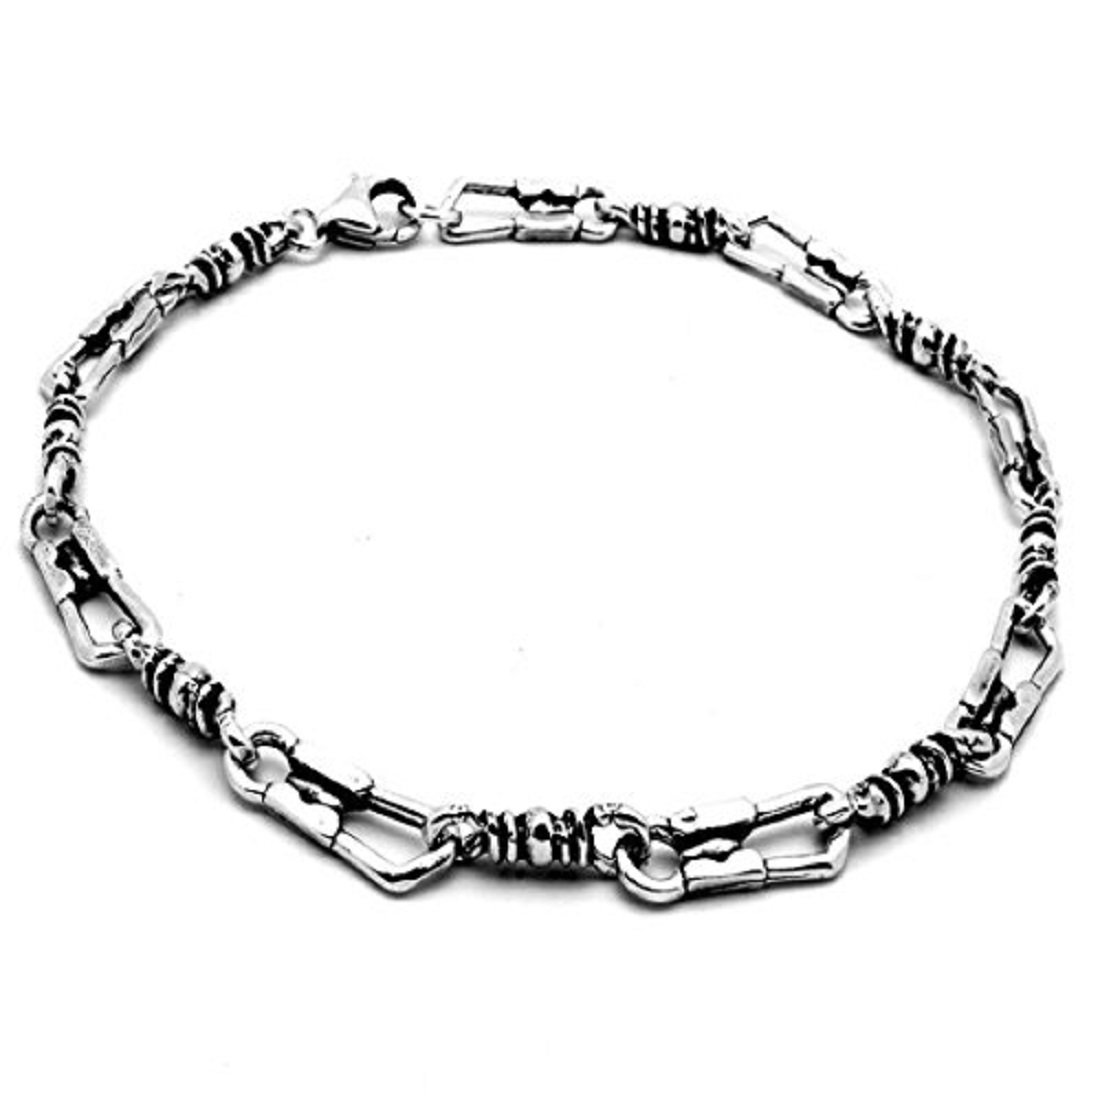 Fisherman Link Bracelet Solid 925 Sterling Silver Oxidize Design Cross (9.5)